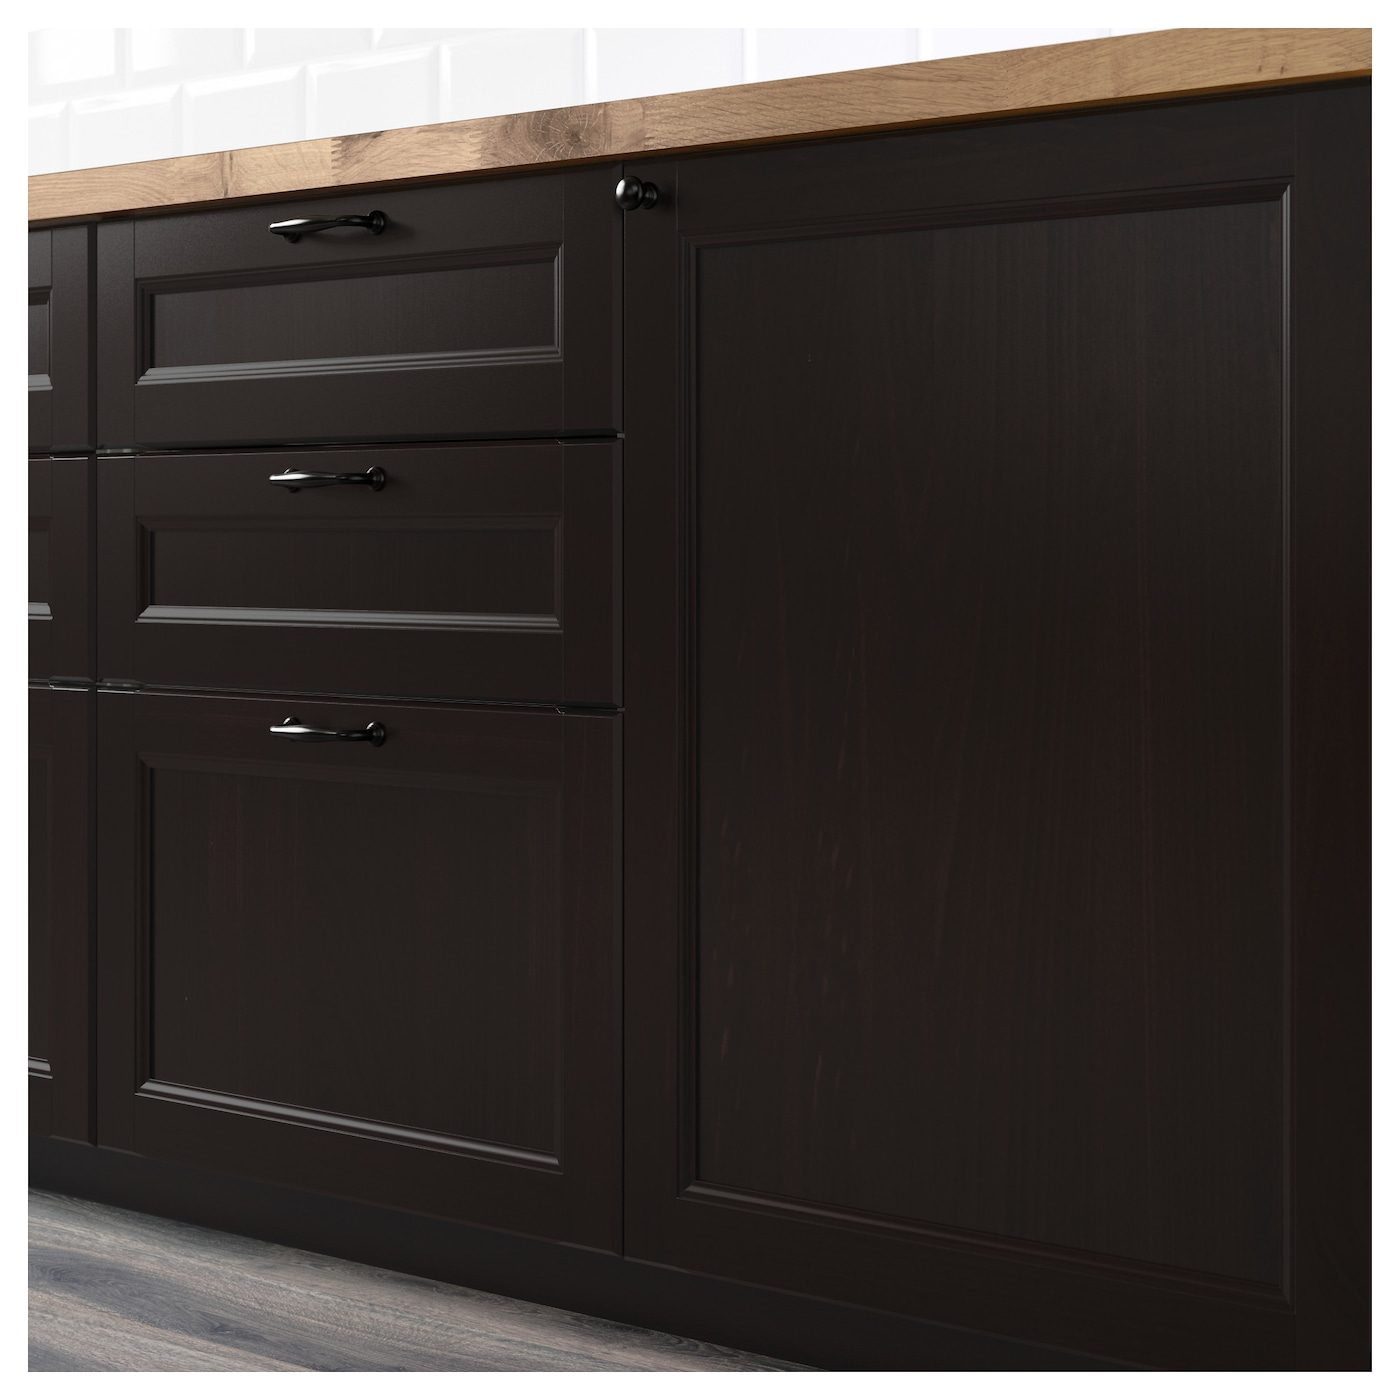 Laxarby 2 p door f corner base cabinet set black brown for Black kitchen cabinet doors